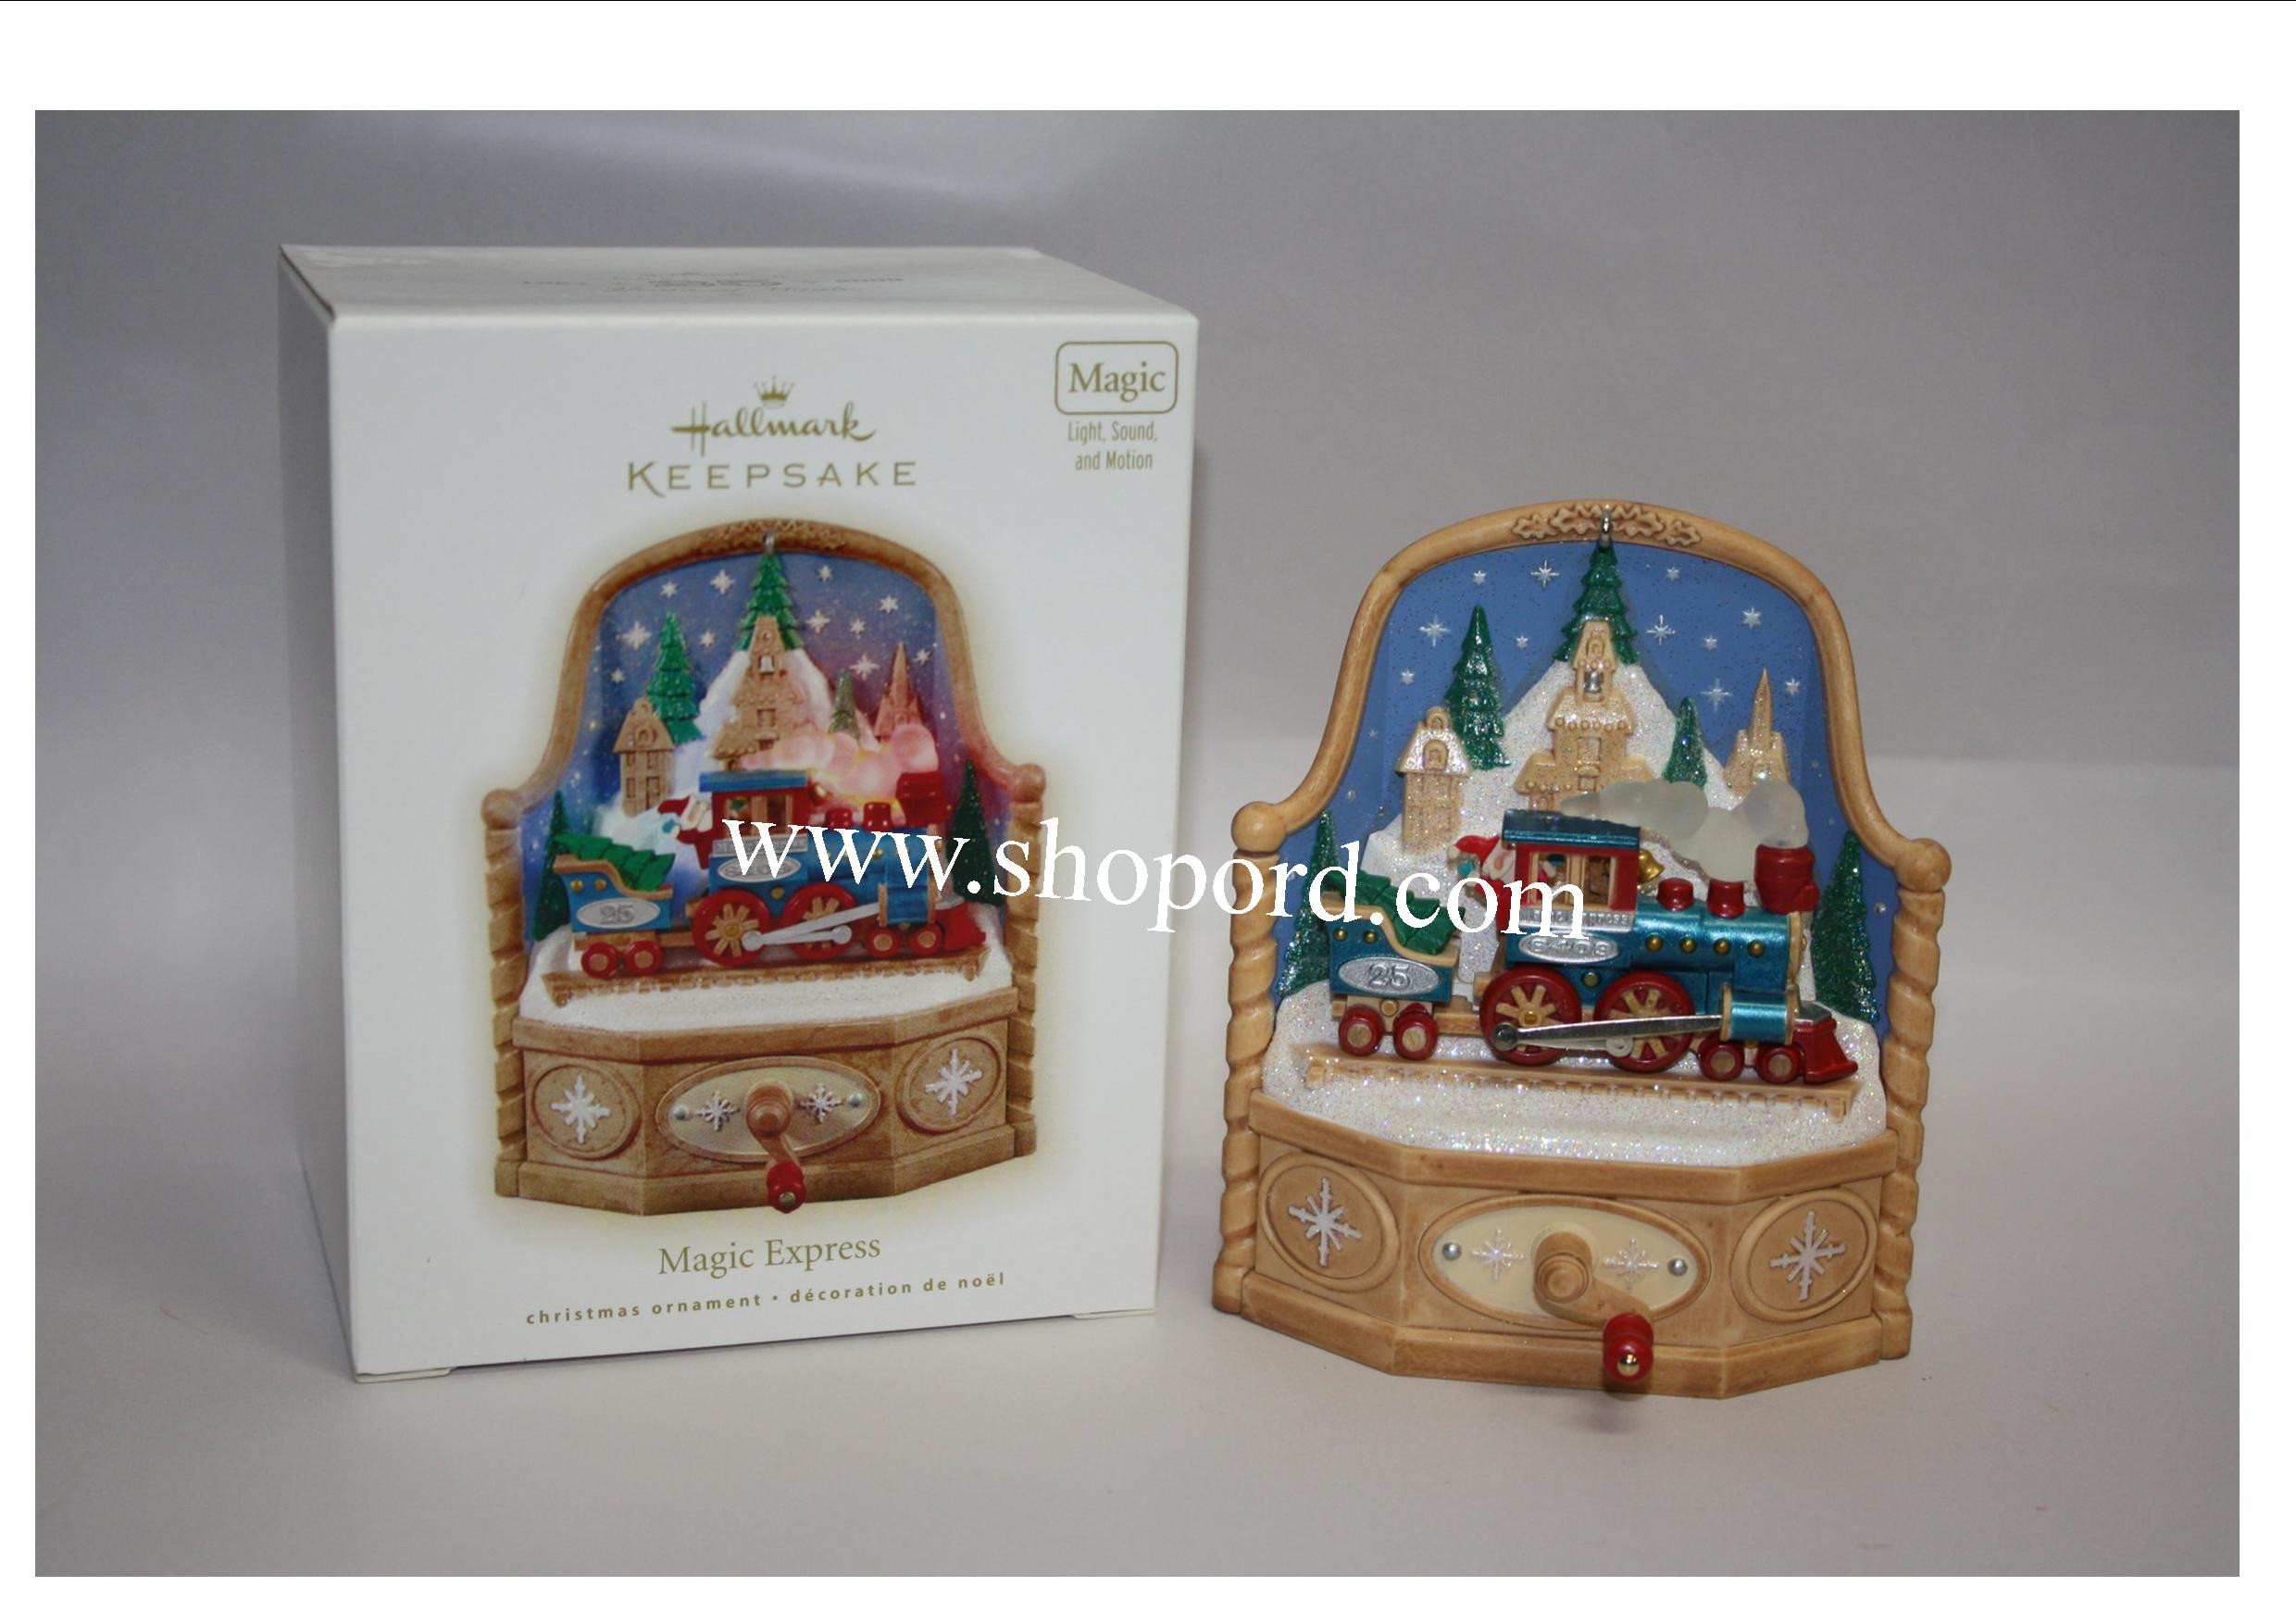 Hallmark 2009 Magic Express Ornament QXG6582 Damaged Box